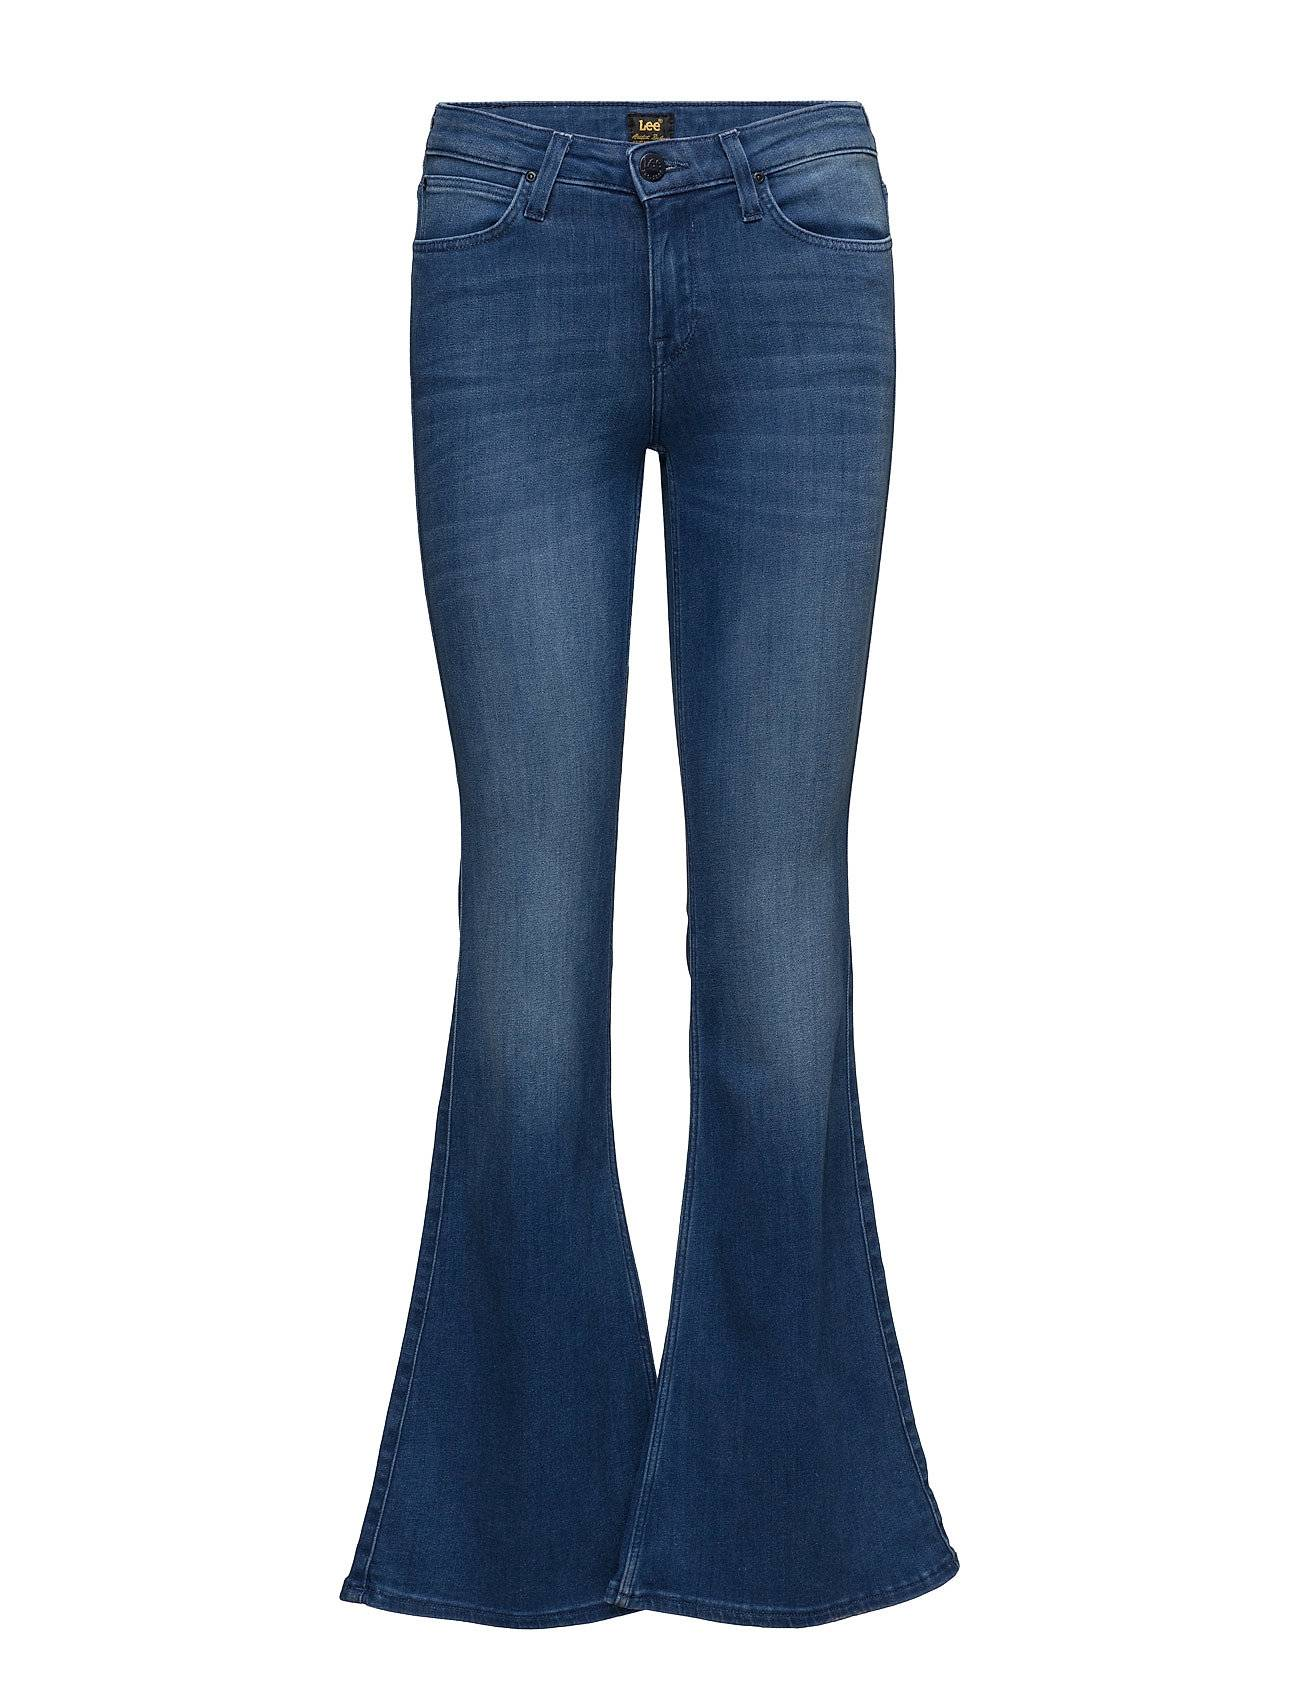 Lee Jeans Skinny Flare Worn Pacific